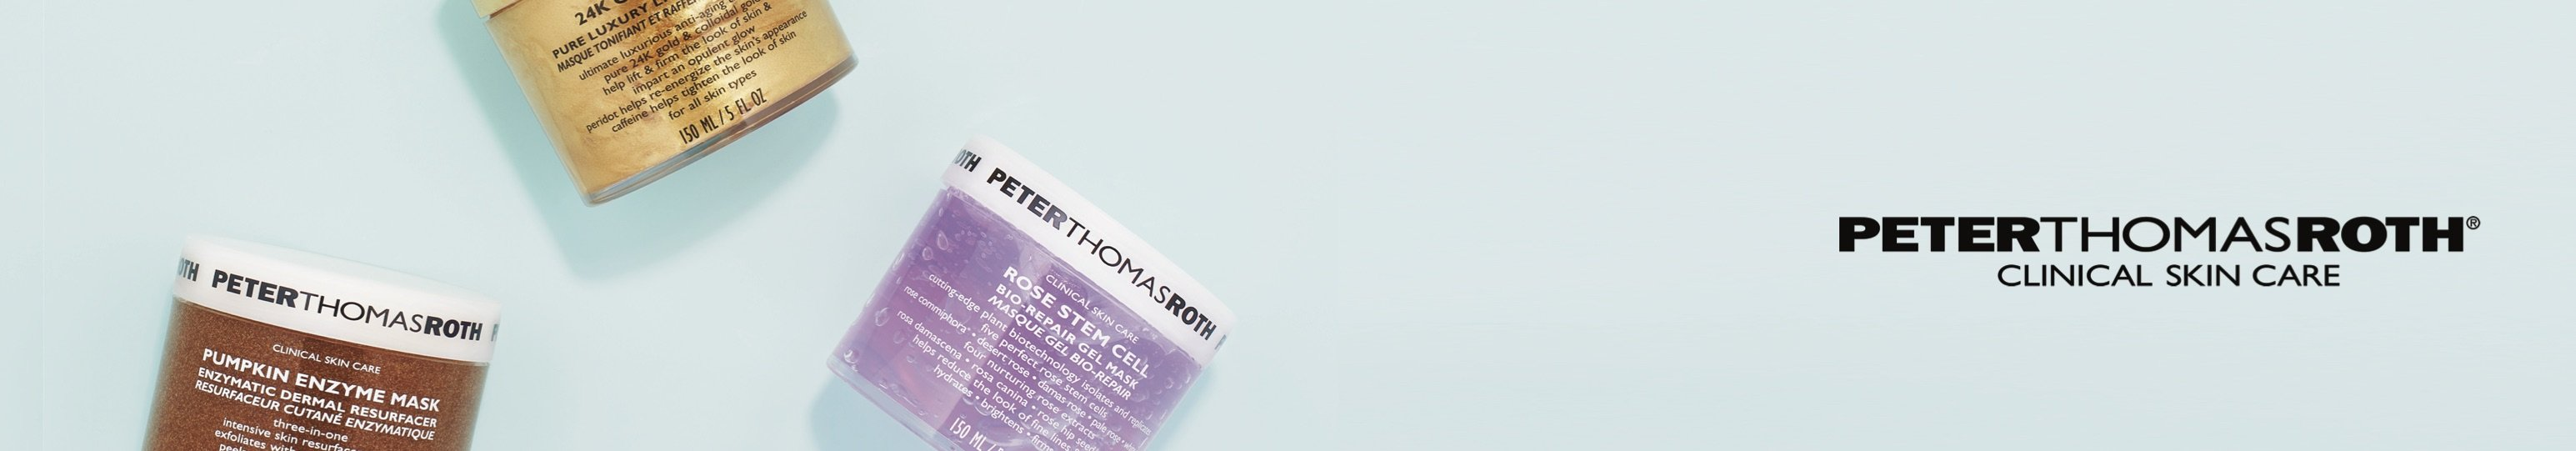 Peter Thomas Roth Markenbanner